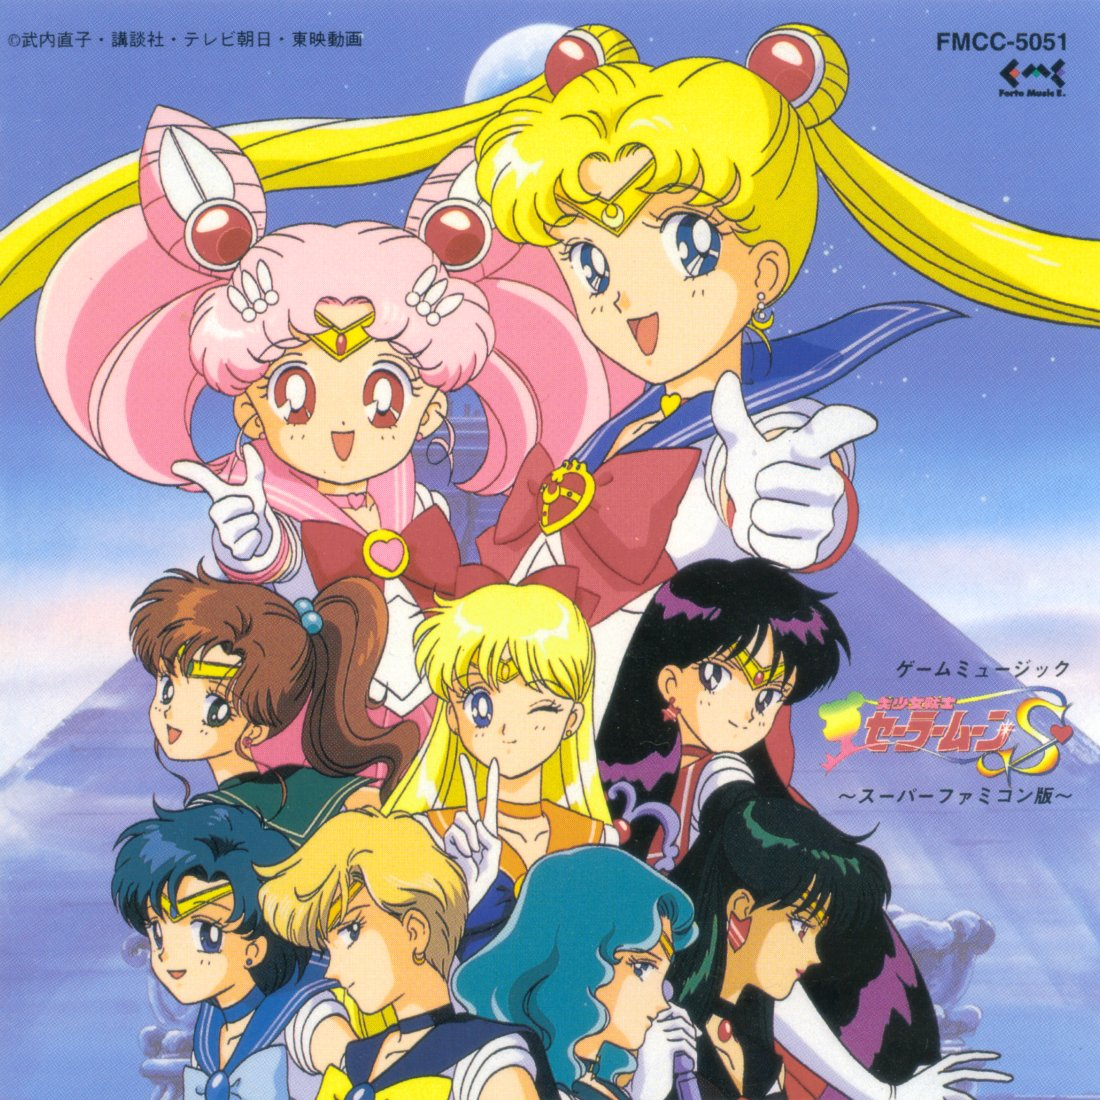 Game Music Bishoujo Senshi Sailor Moon S ~ Super Famicom ~